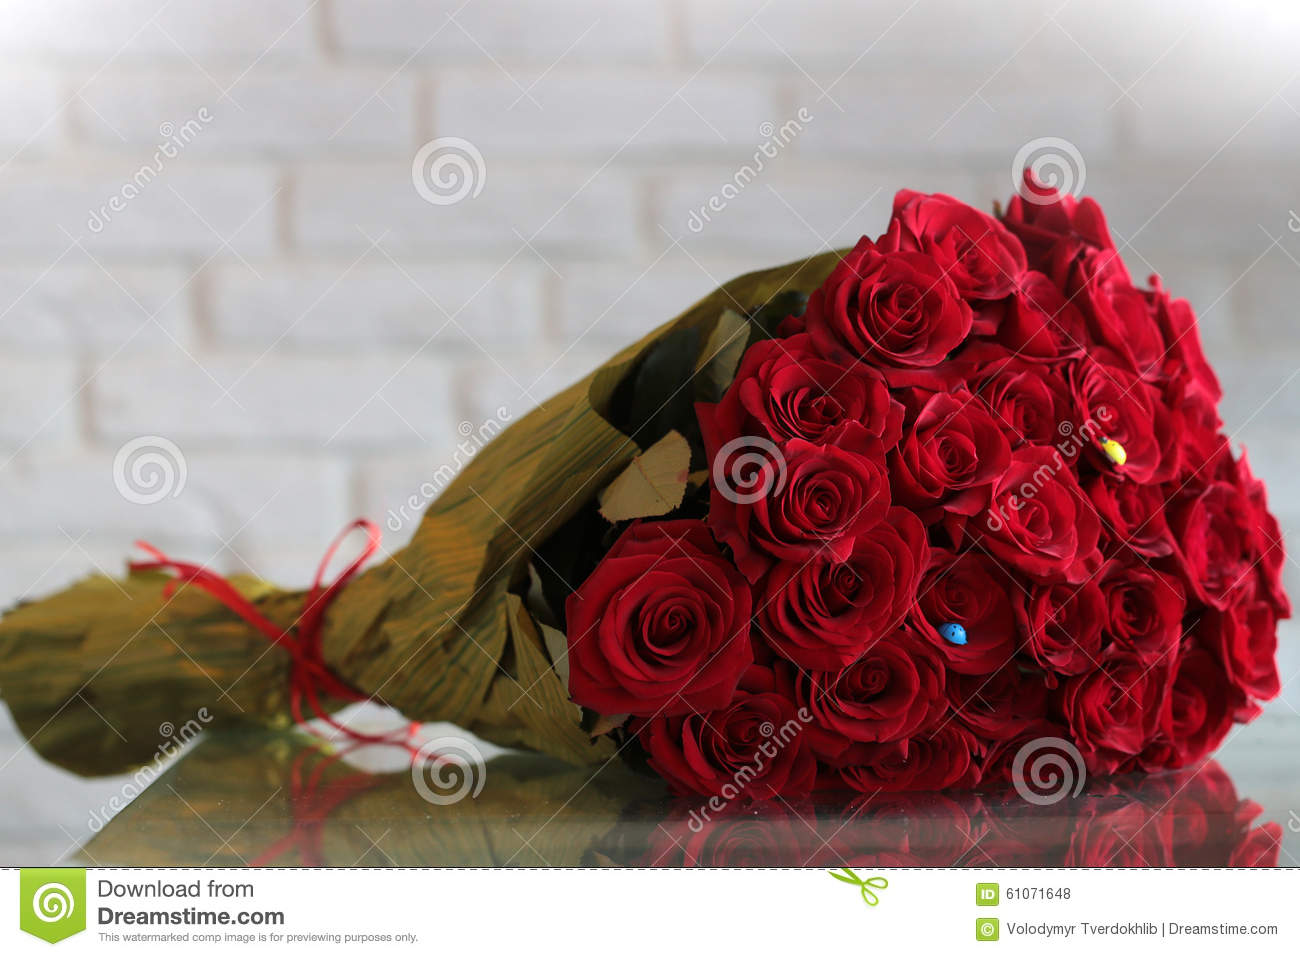 Red rose flowers bouquet stock photo image of brick 61071648 closeup of one big beautiful colorful soft aroma fresh wedding or birthday bouquet of many red rose flowers lying sunny day outdoor on natural background izmirmasajfo